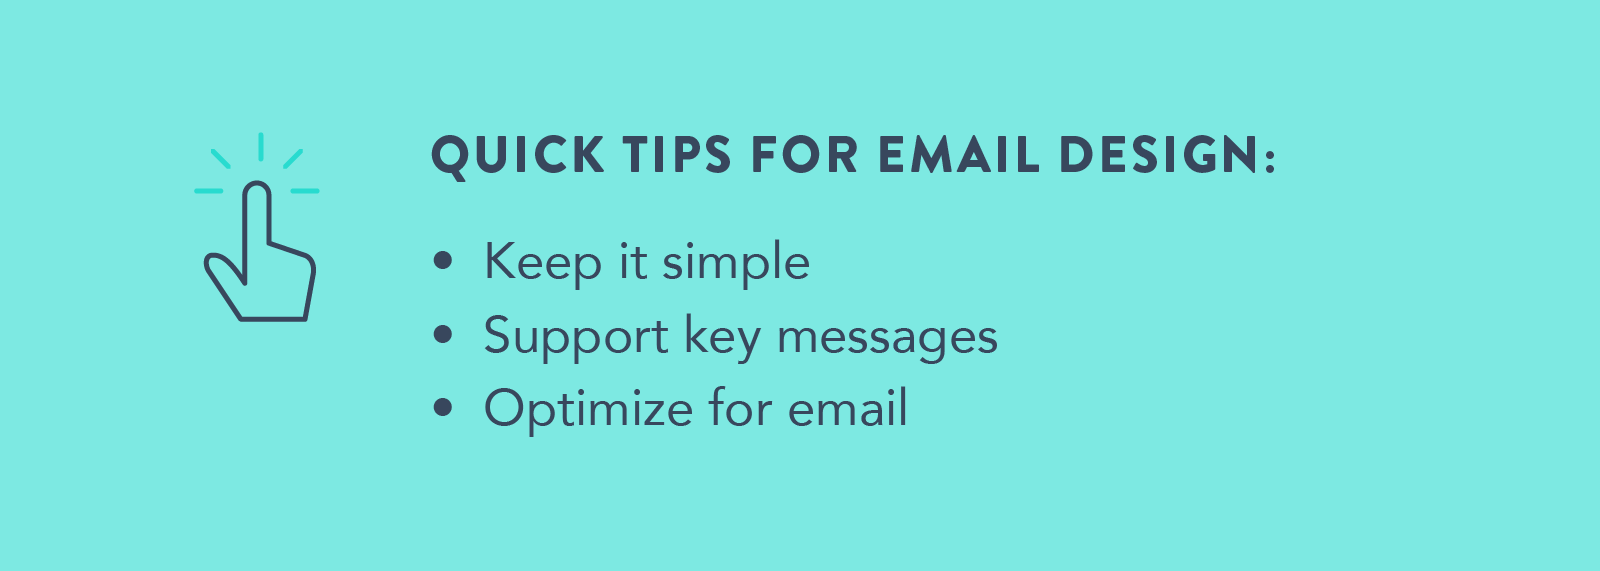 Email marketing 101 - Quick tips